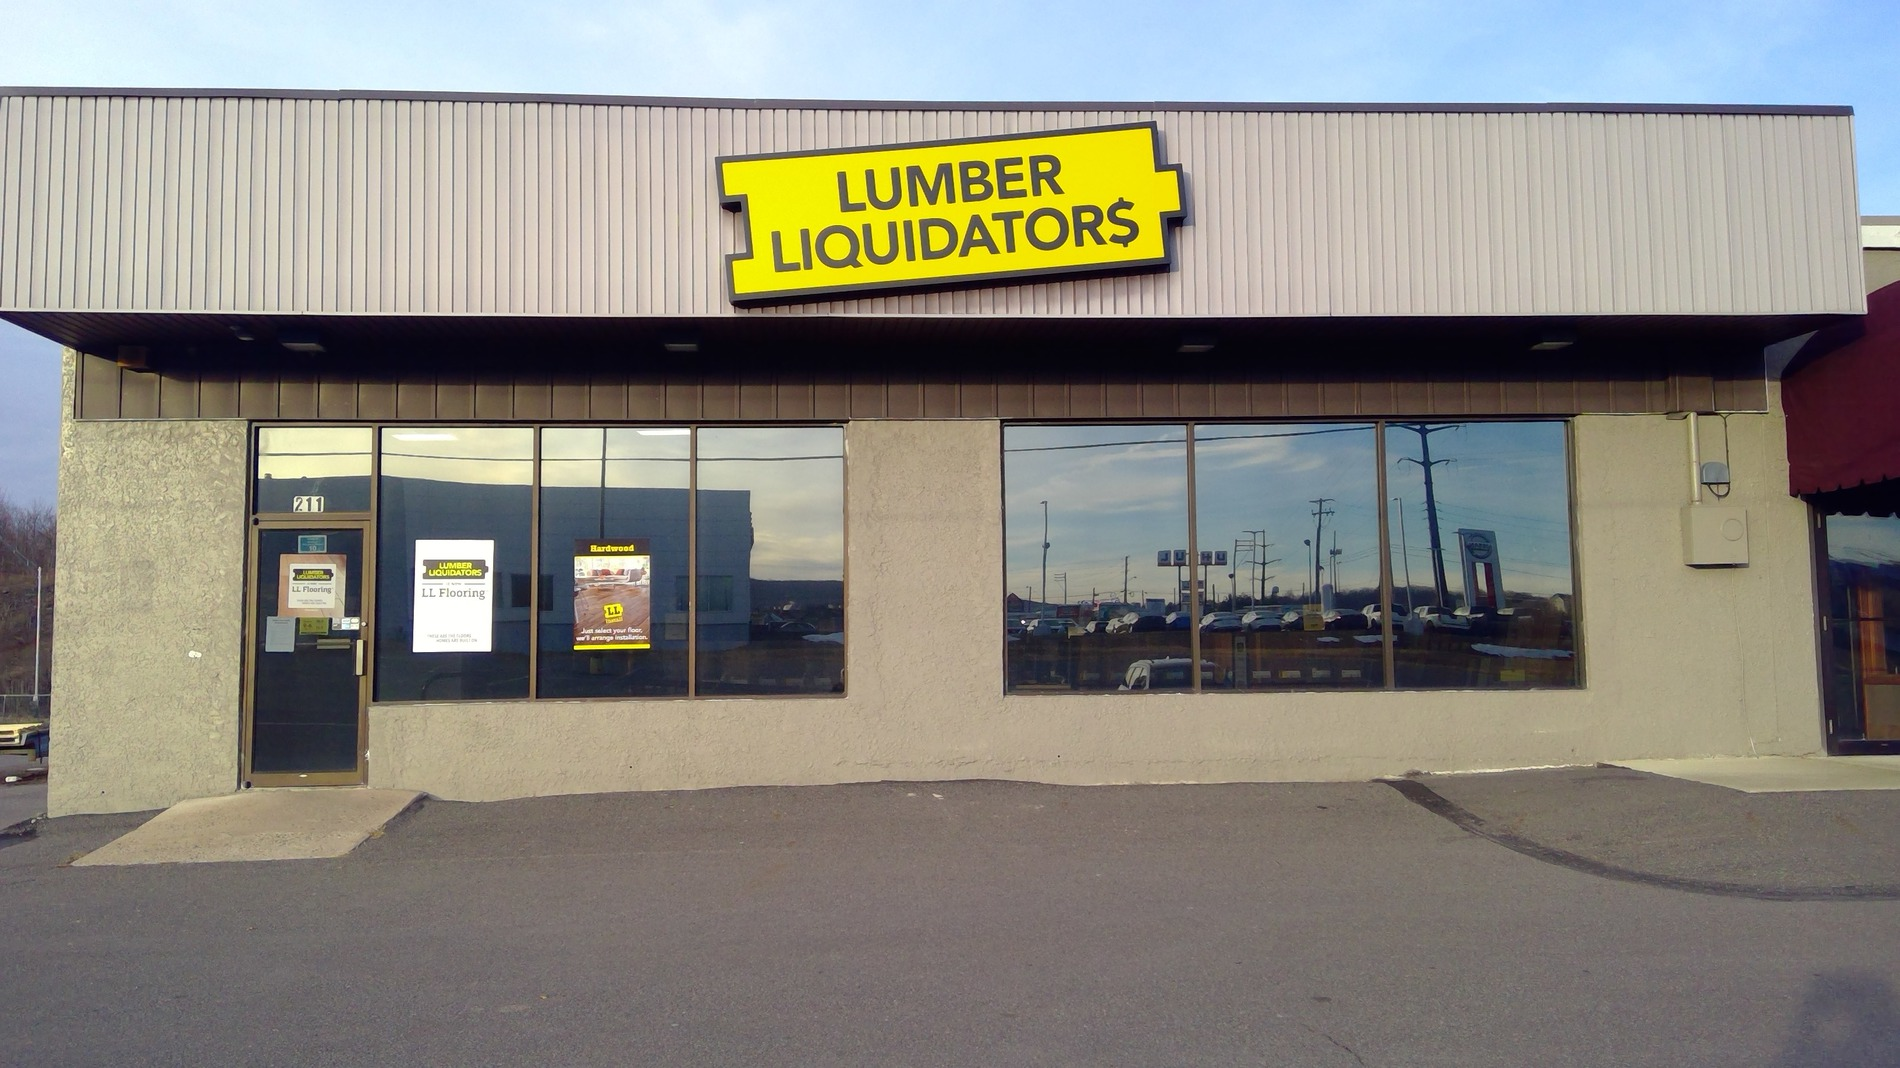 LL Flooring #1133 Wilkes-Barre | 211 Mundy Street | Storefront